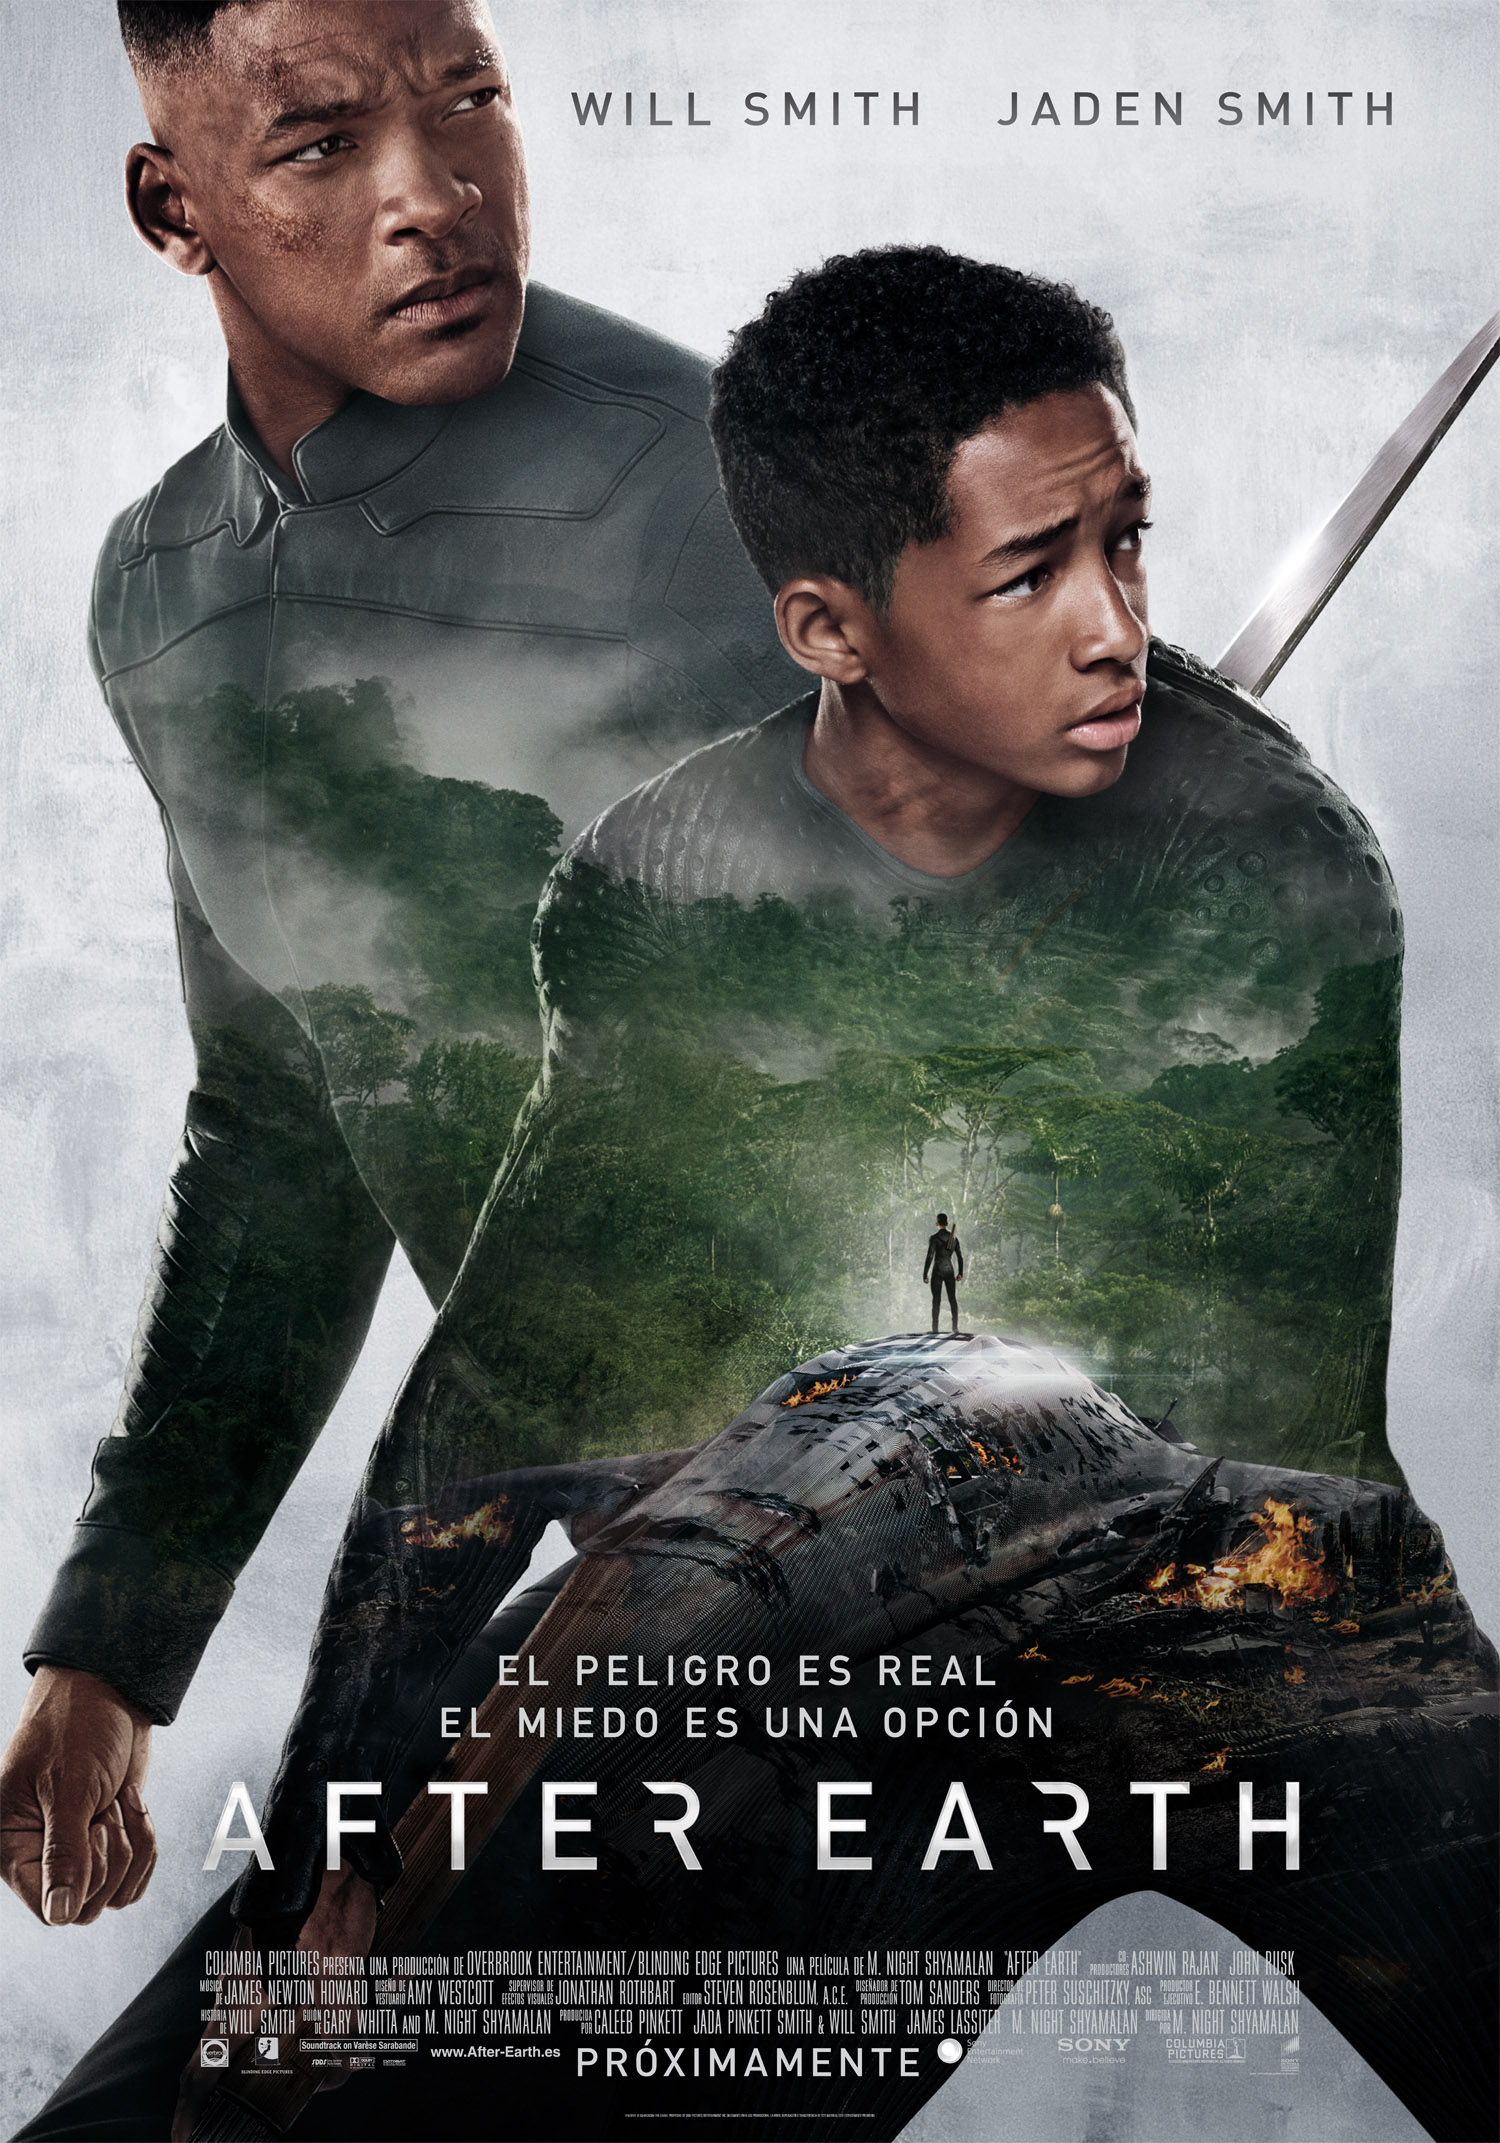 After Earth tráiler 2: Smith e hijo.